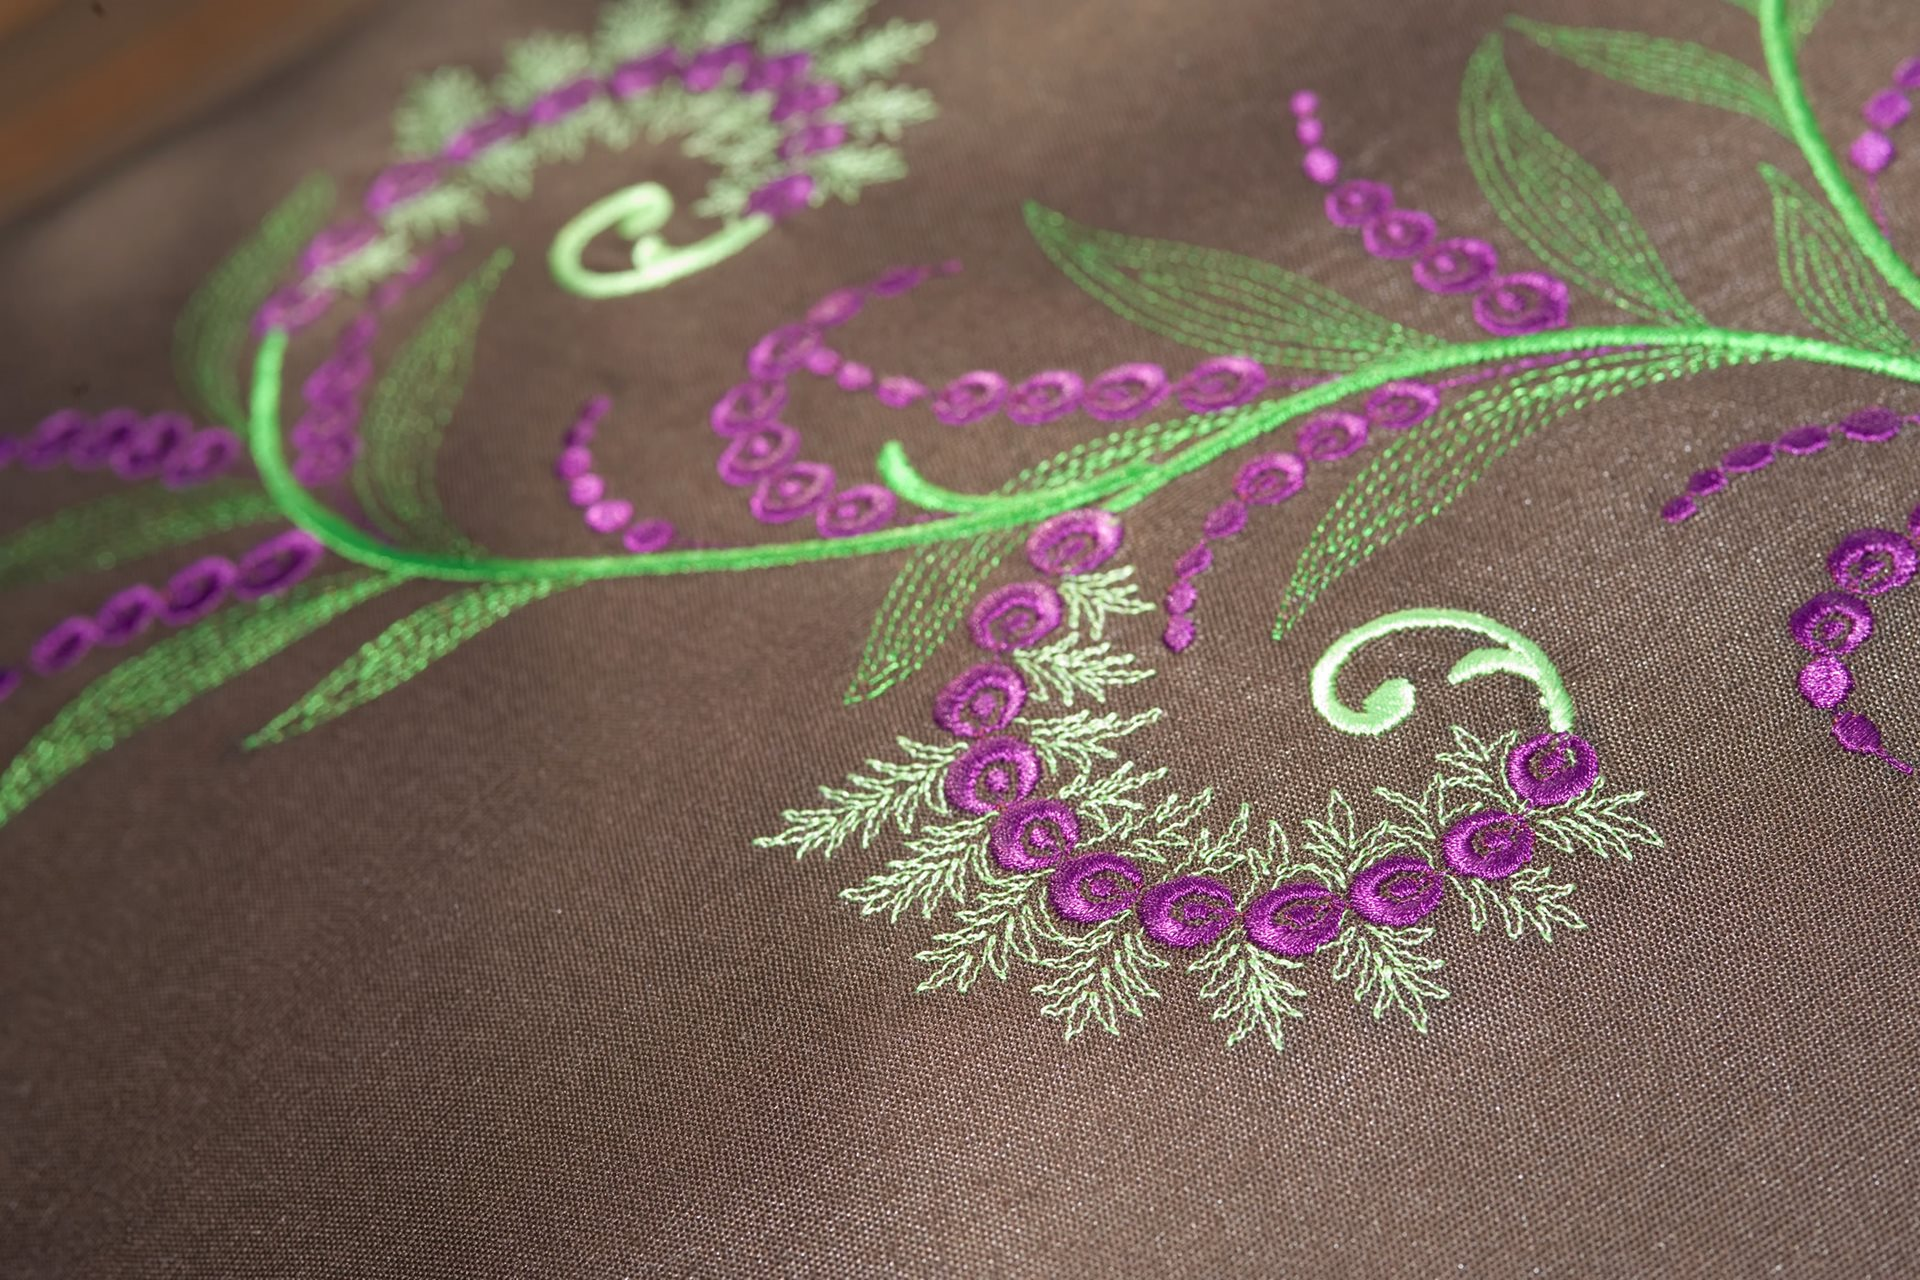 Embroidery designs for free